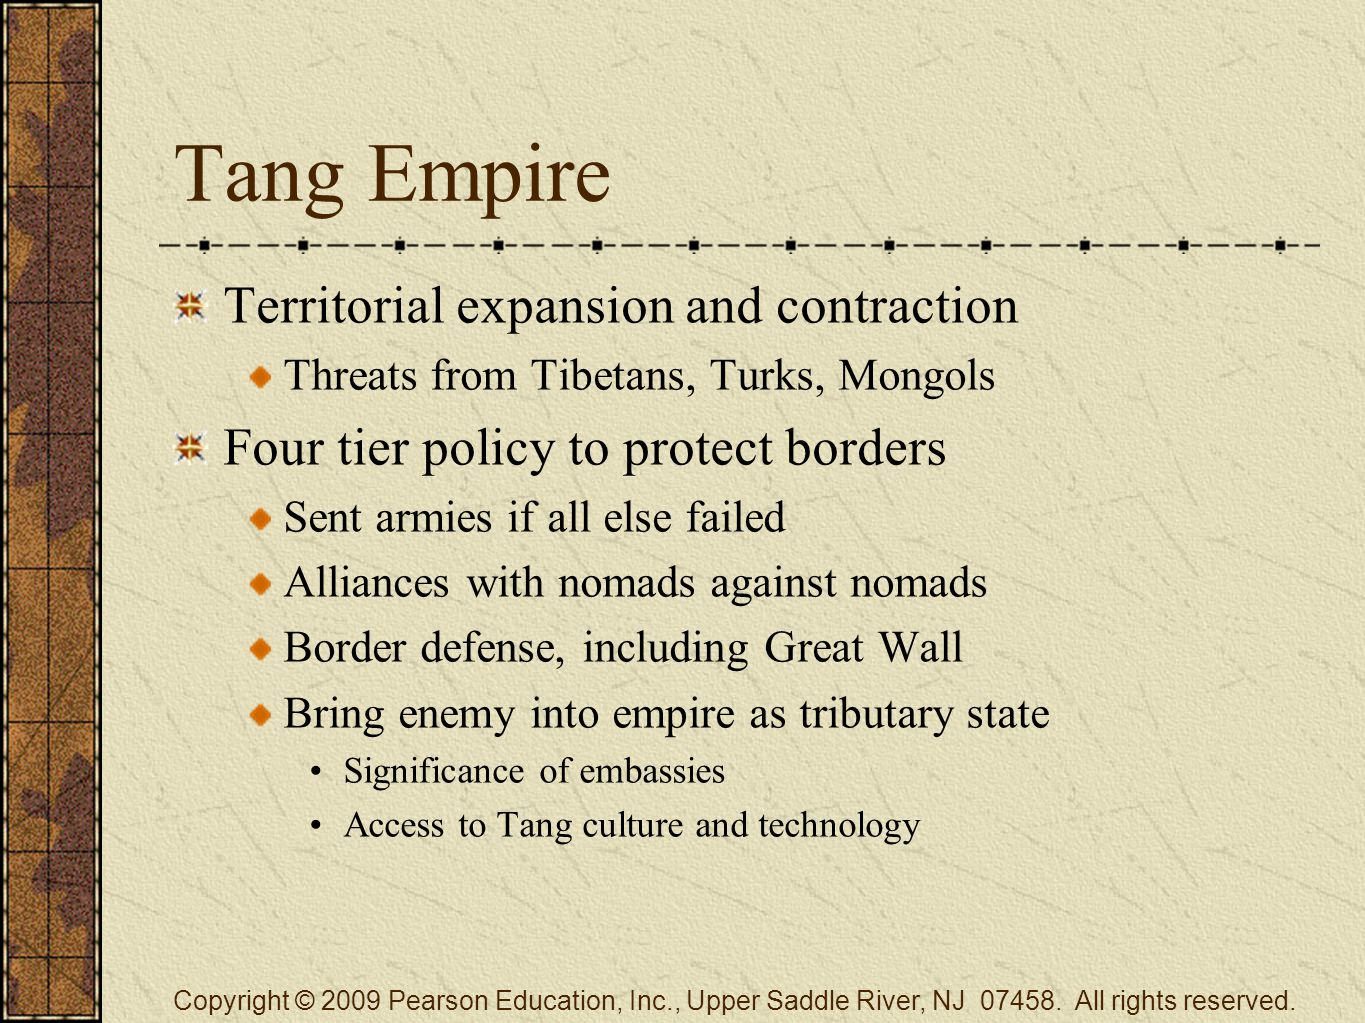 Tang Empire Territorial expansion and contraction Threats from Tibetans, Turks, Mongols Four tier policy to protect borders Sent armies if all else failed Alliances with nomads against nomads Border defense, including Great Wall Bring enemy into empire as tributary state Significance of embassies Access to Tang culture and technology Copyright © 2009 Pearson Education, Inc., Upper Saddle River, NJ 07458.